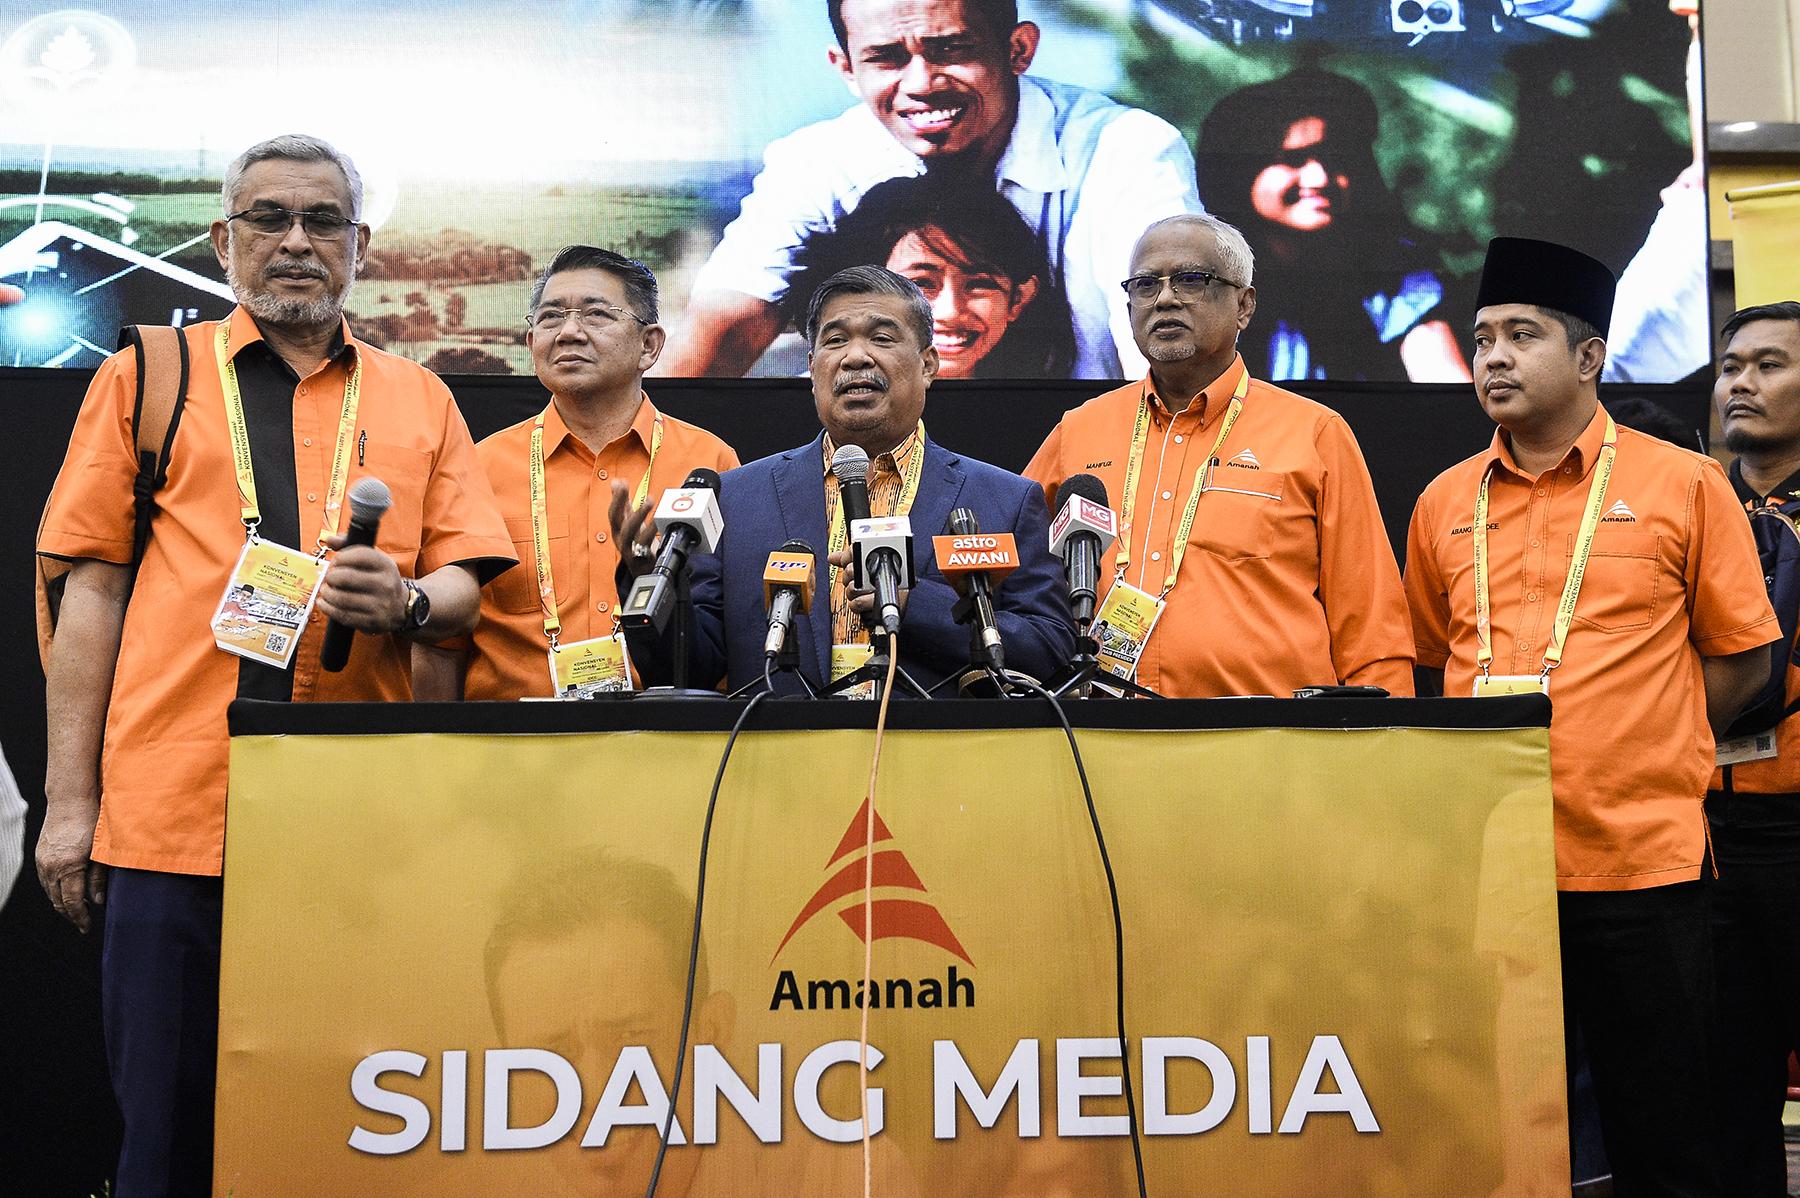 Amanah president Mohamad Sabu speaks during the Amanah National Convention 2019 in Shah Alam December 7, 2019. — Picture by Miera Zulyana